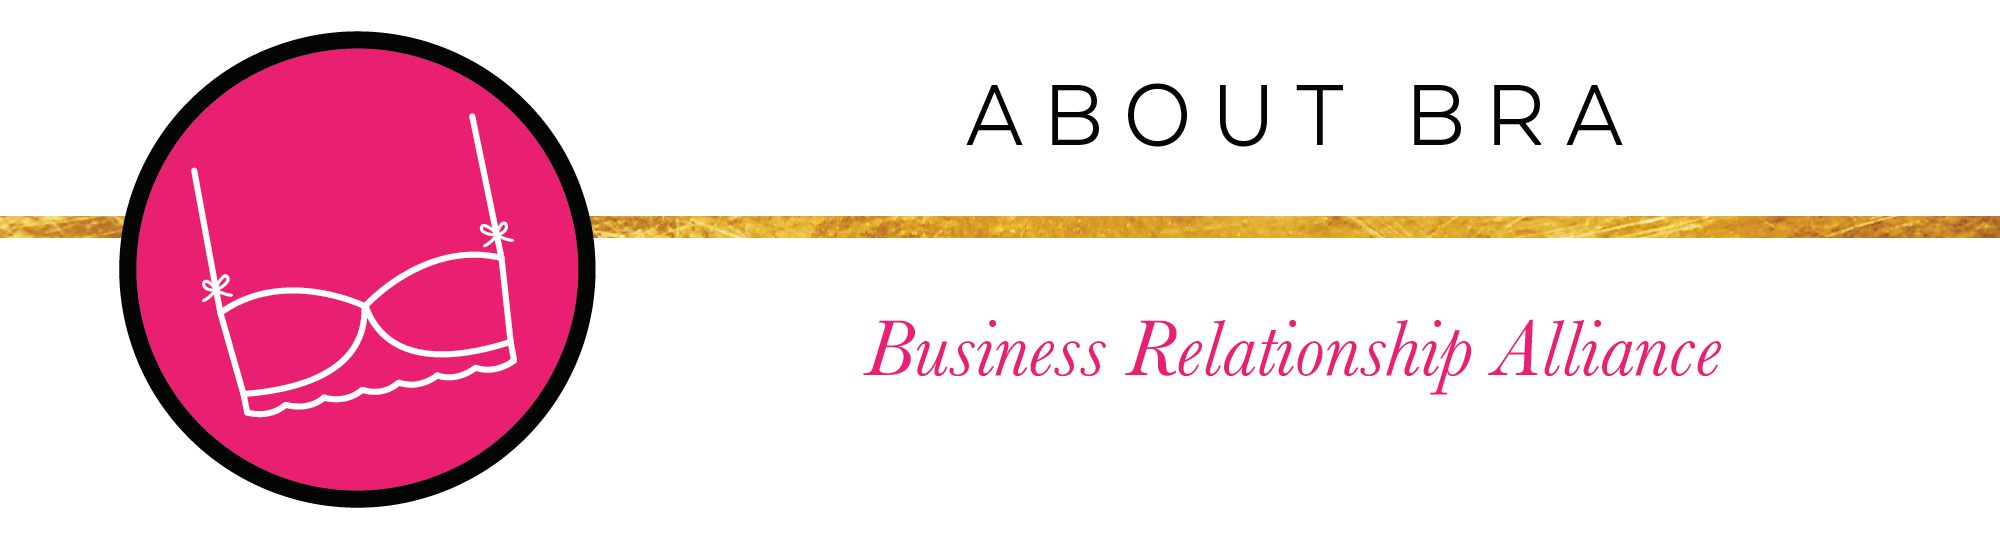 About B.R.A. - Business relationship alliance